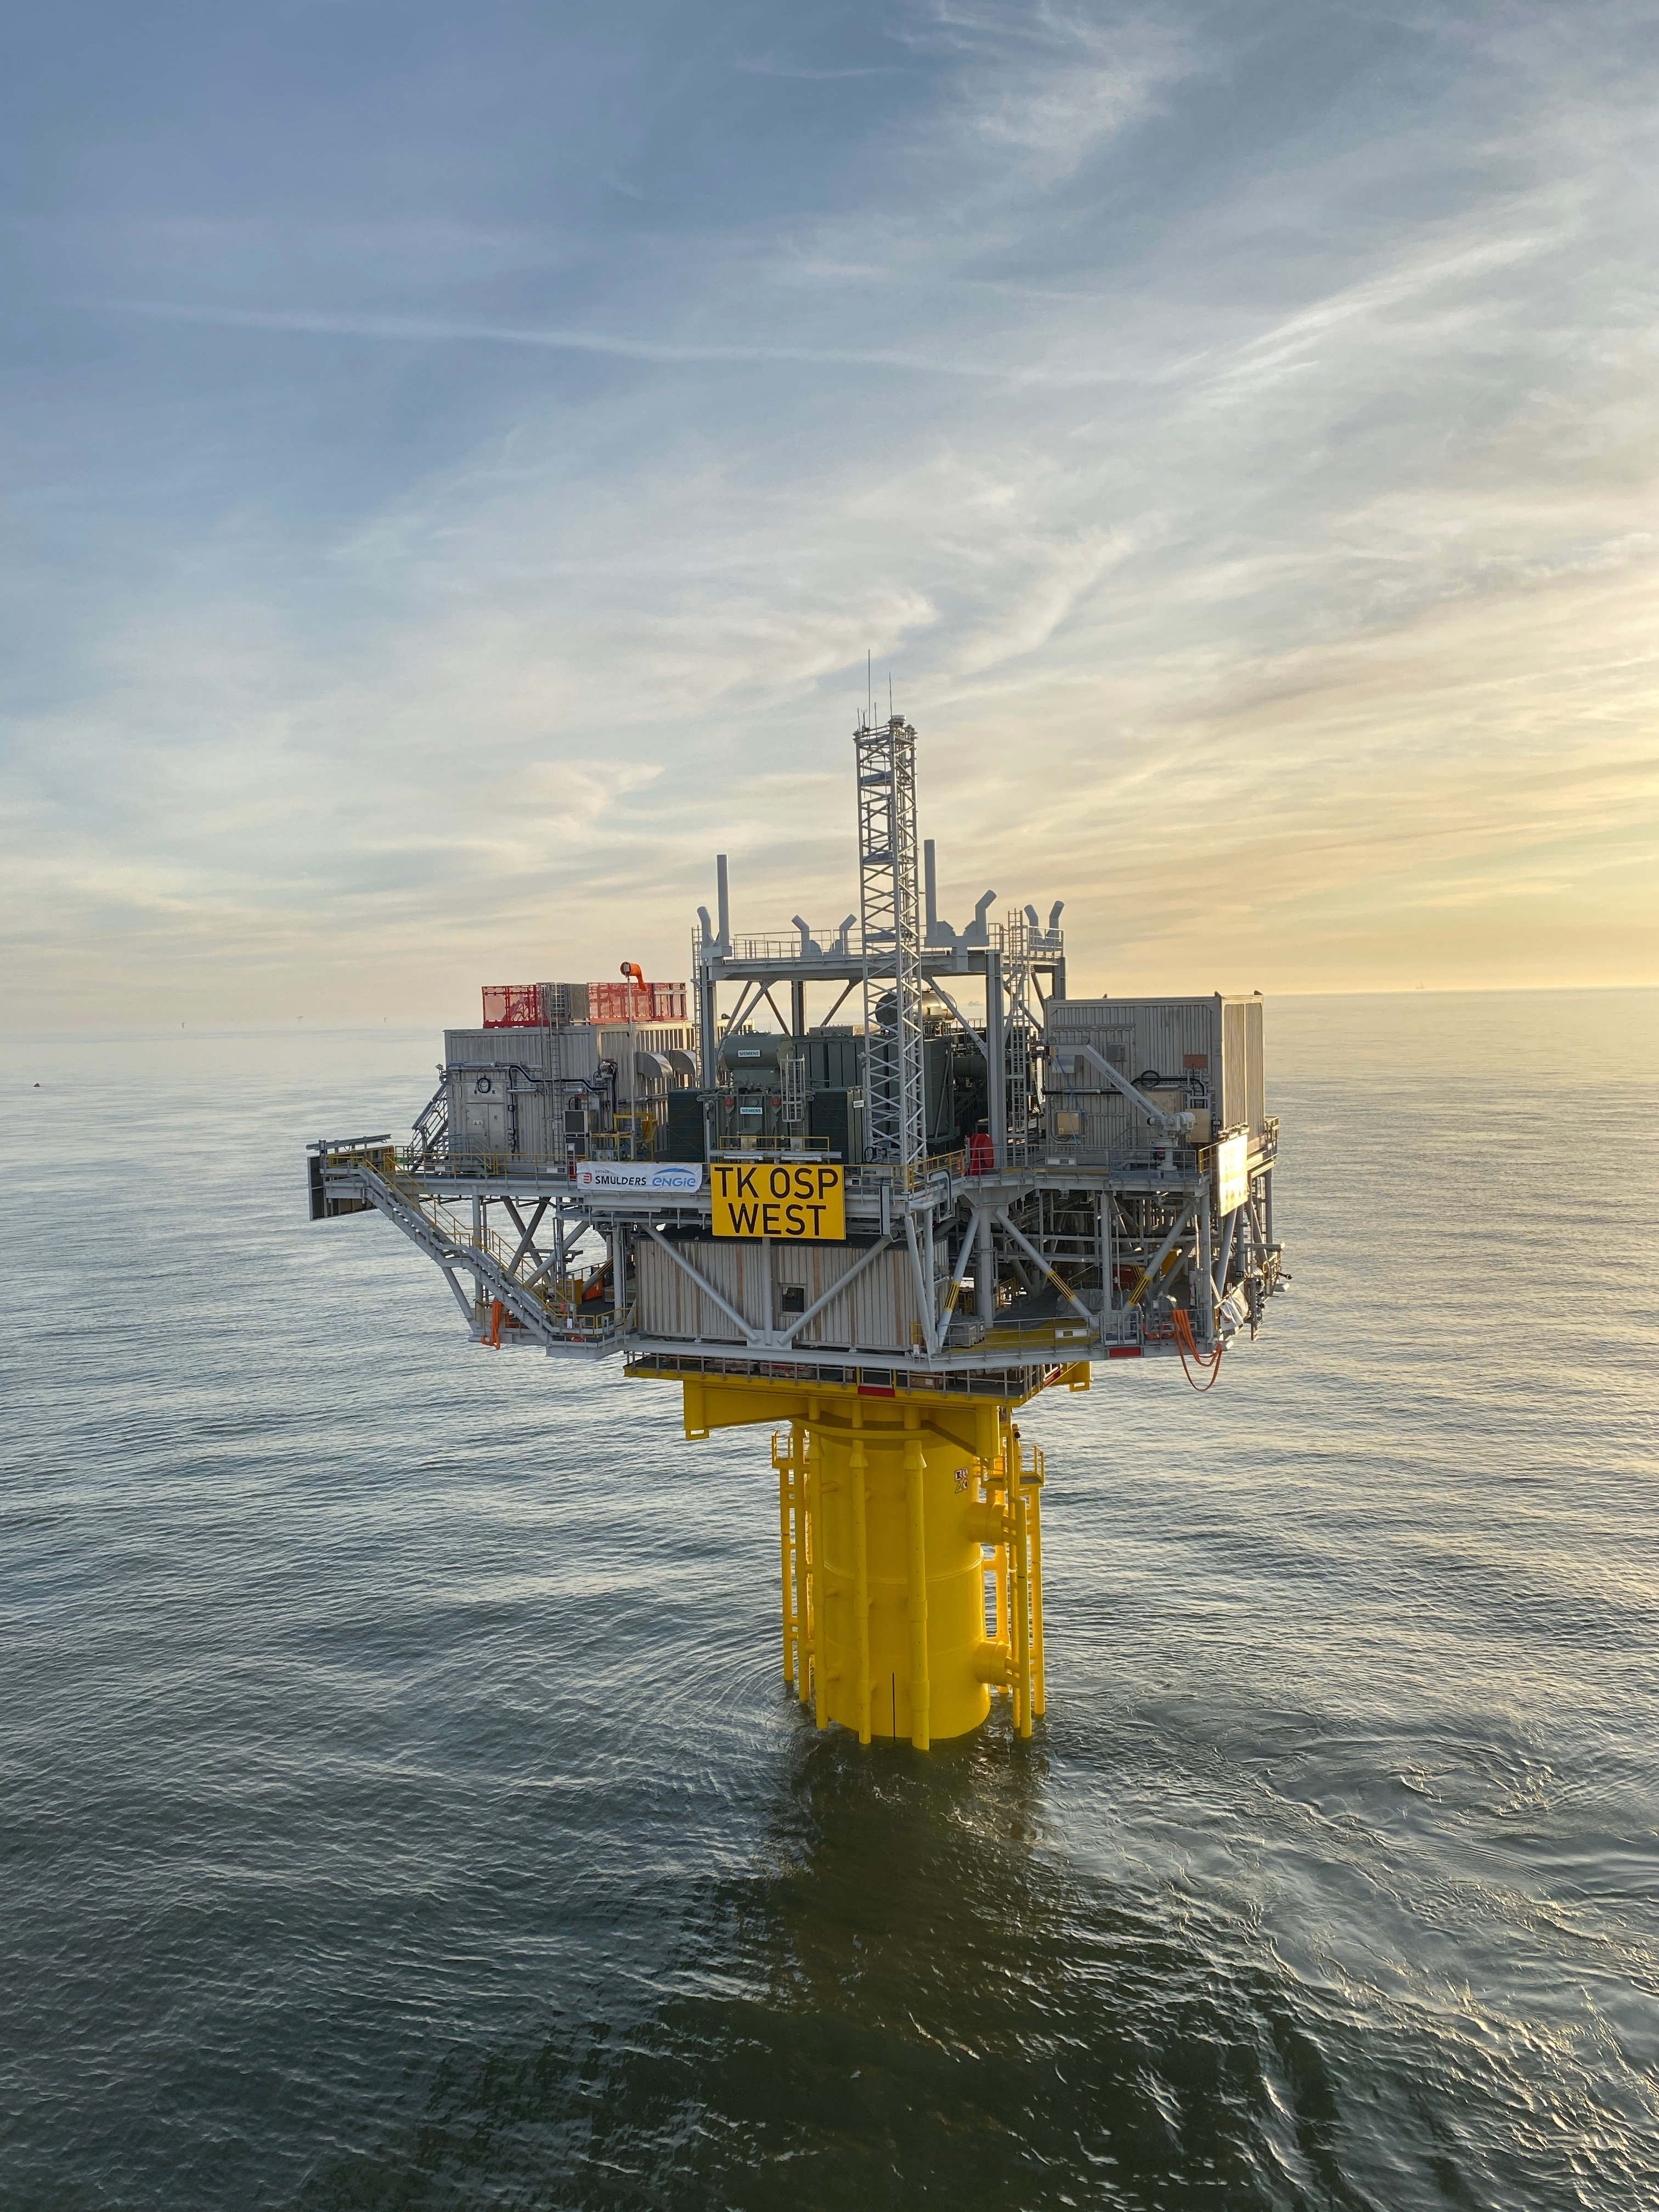 Triton Knoll offshore substation OSP West fully installed at its offshore location